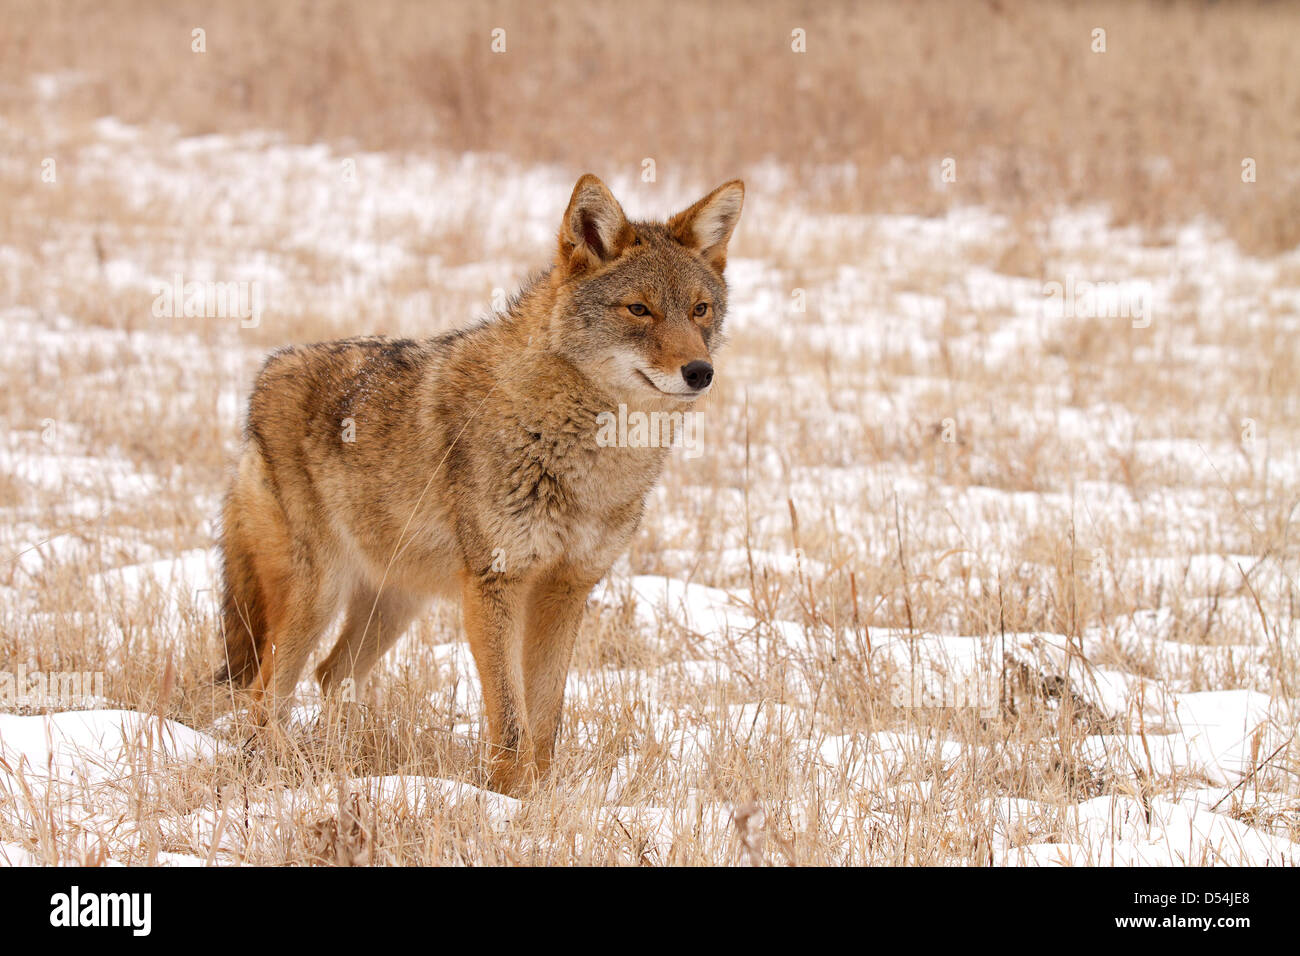 Coyote, Canis latrans standing in the snow - Stock Image